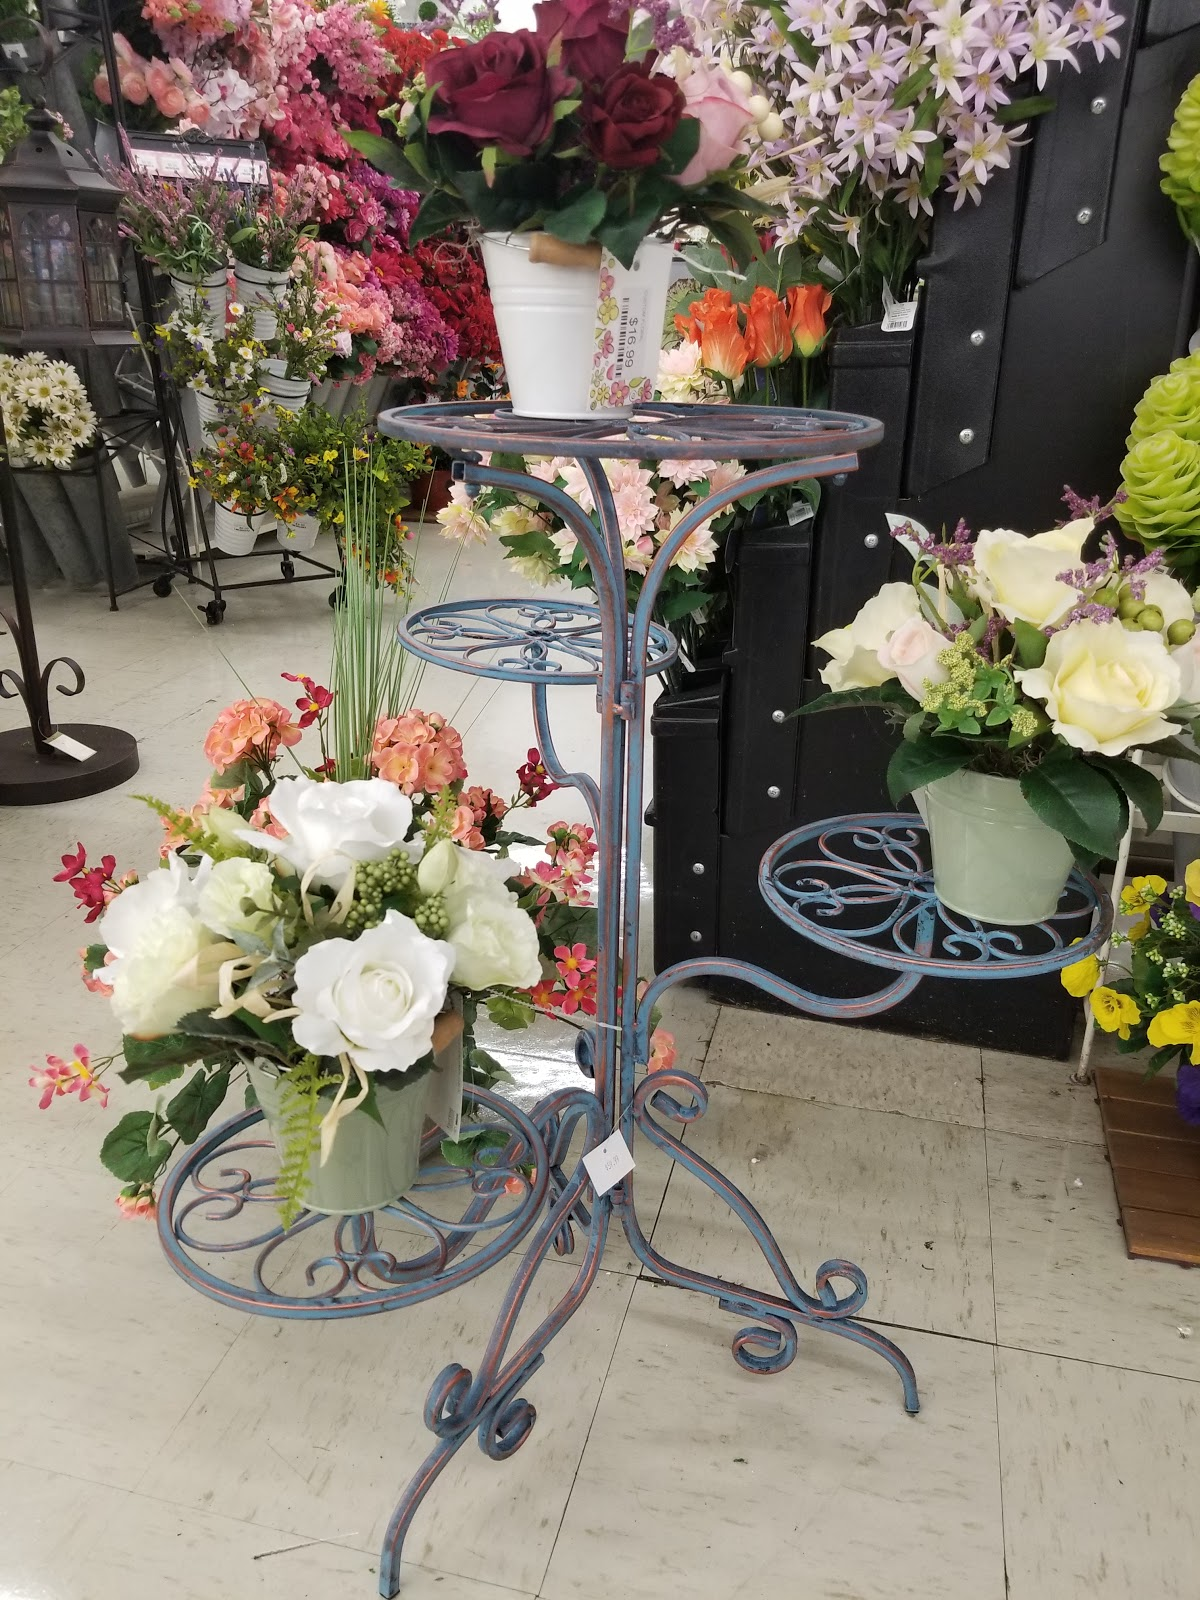 Artificial Flowers on Display In Store